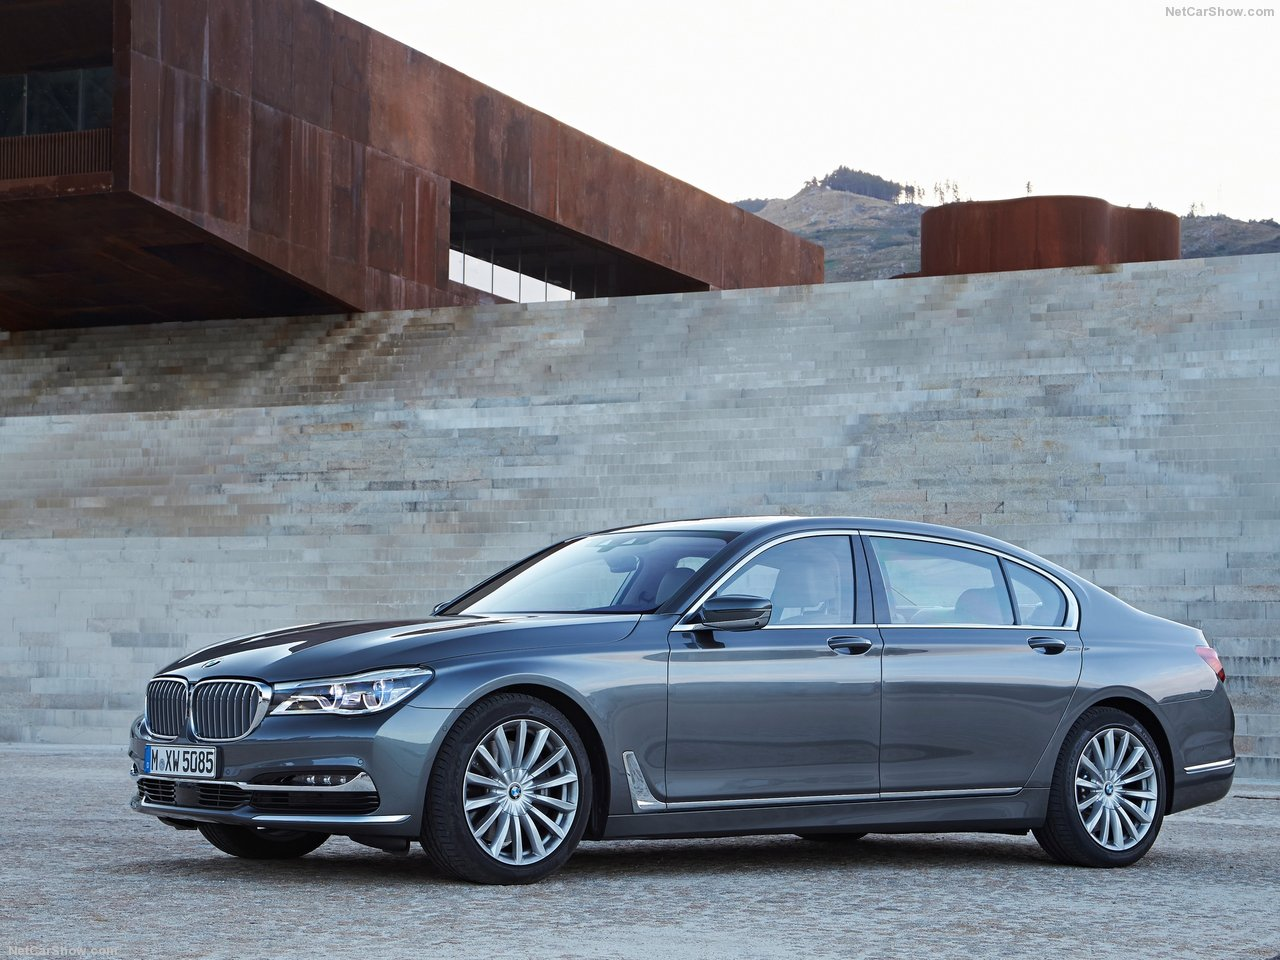 BMW 750Li xDrive photo 149043